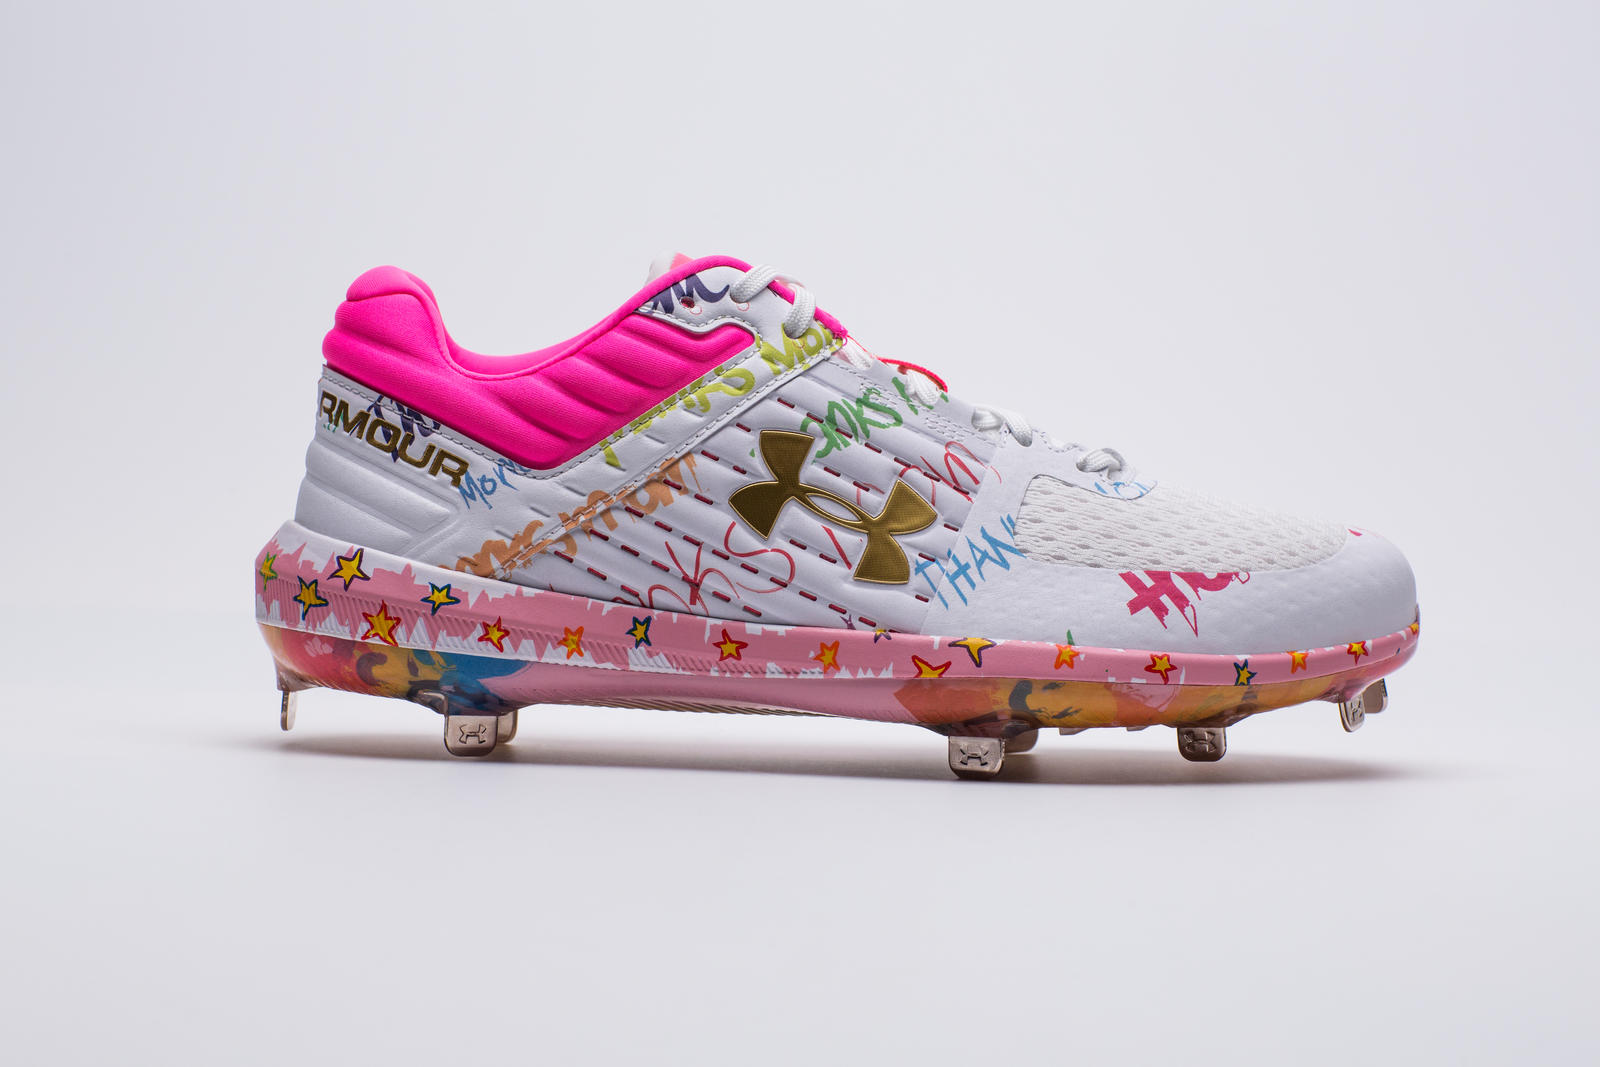 96eb82d28064 Bryce's UA Harper 3 Mother's Day cleats are available for everyone who  plays the game (and wants to show their mom some love) on UA.com.